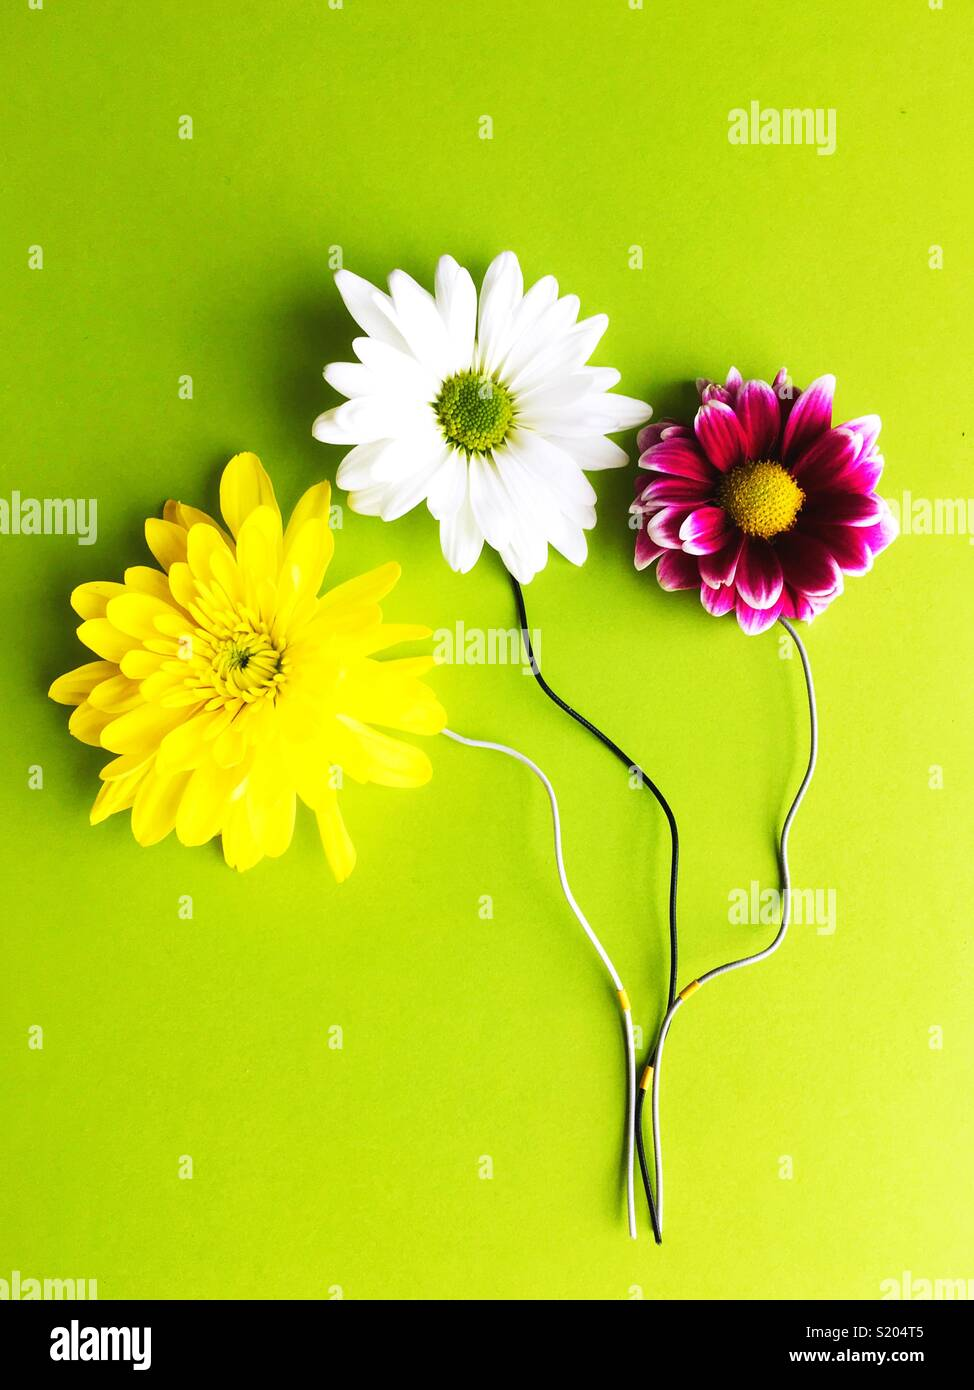 Flowers with electrical wires for stems. Stock Photo